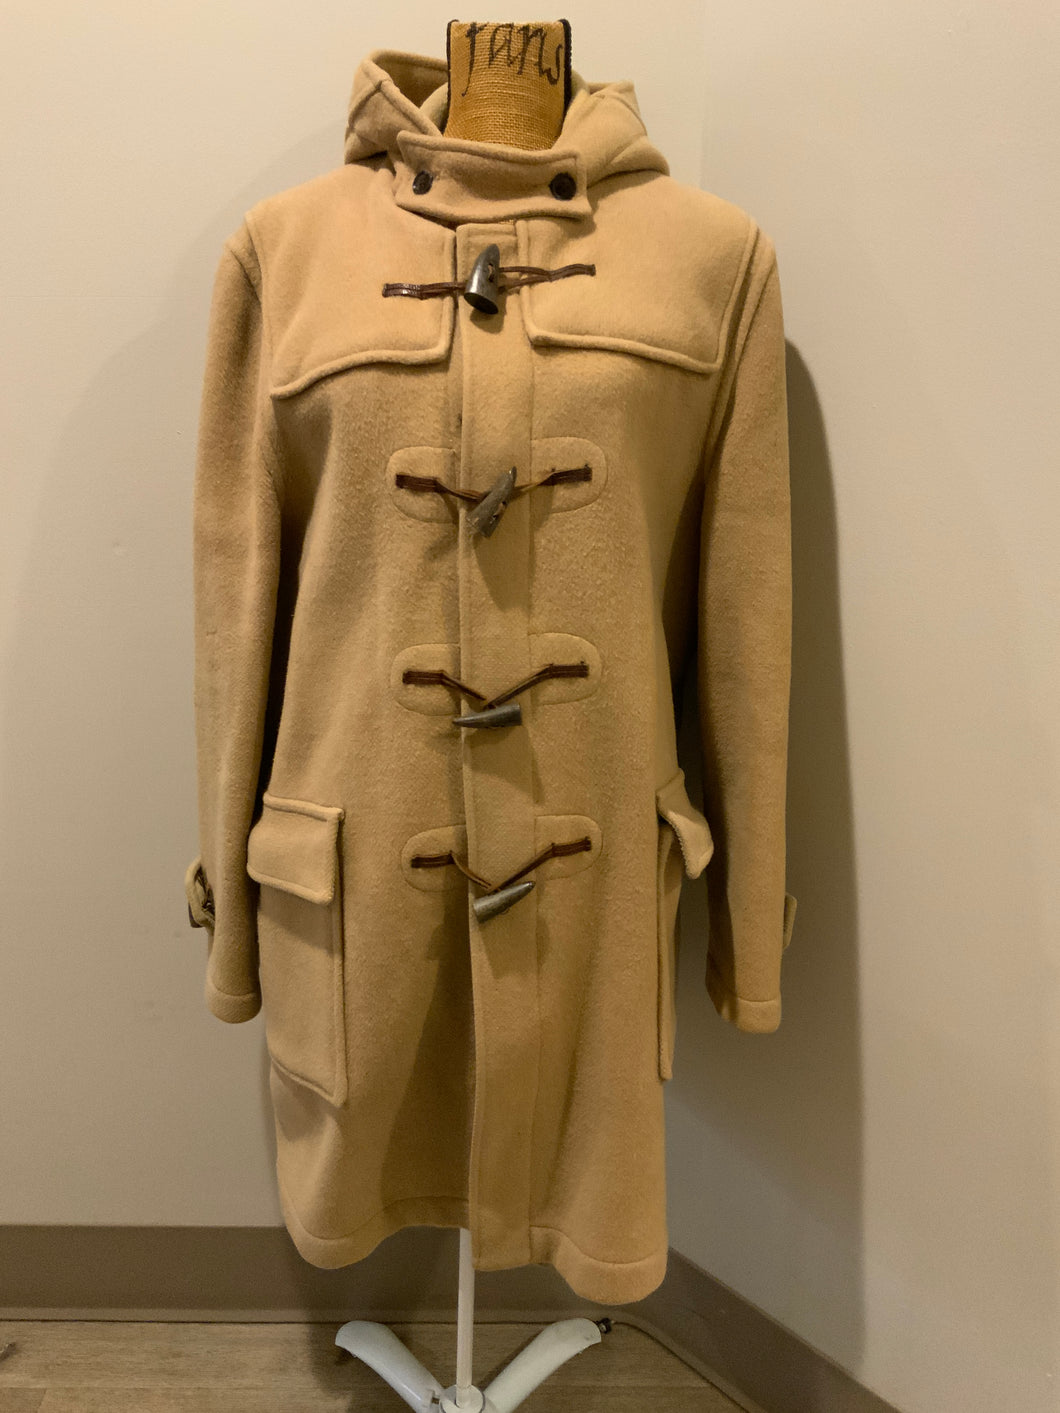 Kingspier Vintage - Gloverall tan wool duffle coat with hood, zipper, wooden toggles and flap pockets. Made in England. Size 50L.